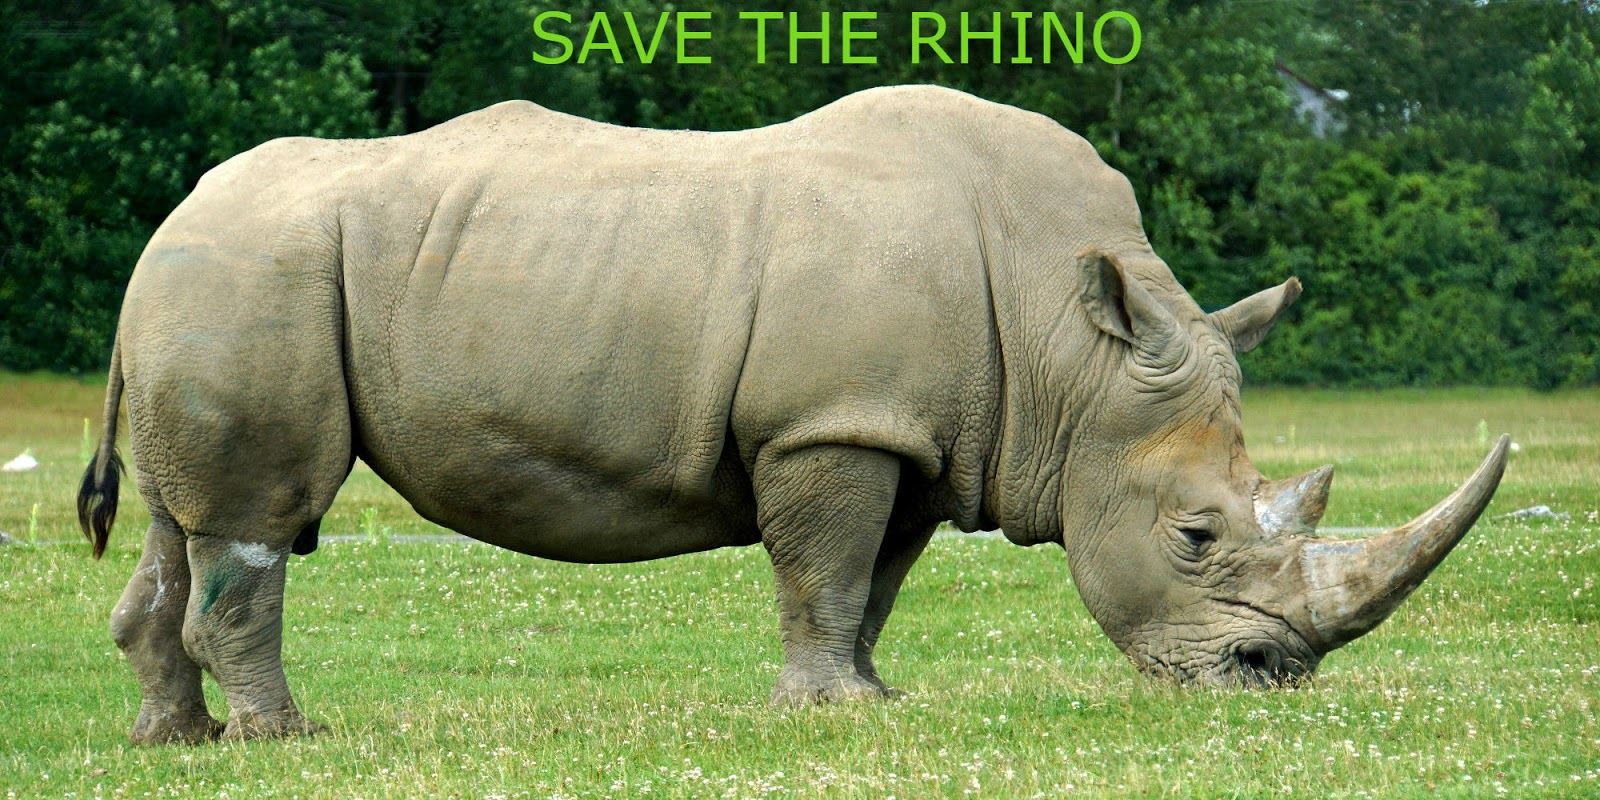 Love Creature and Save Nature: Rhinoceroses facts